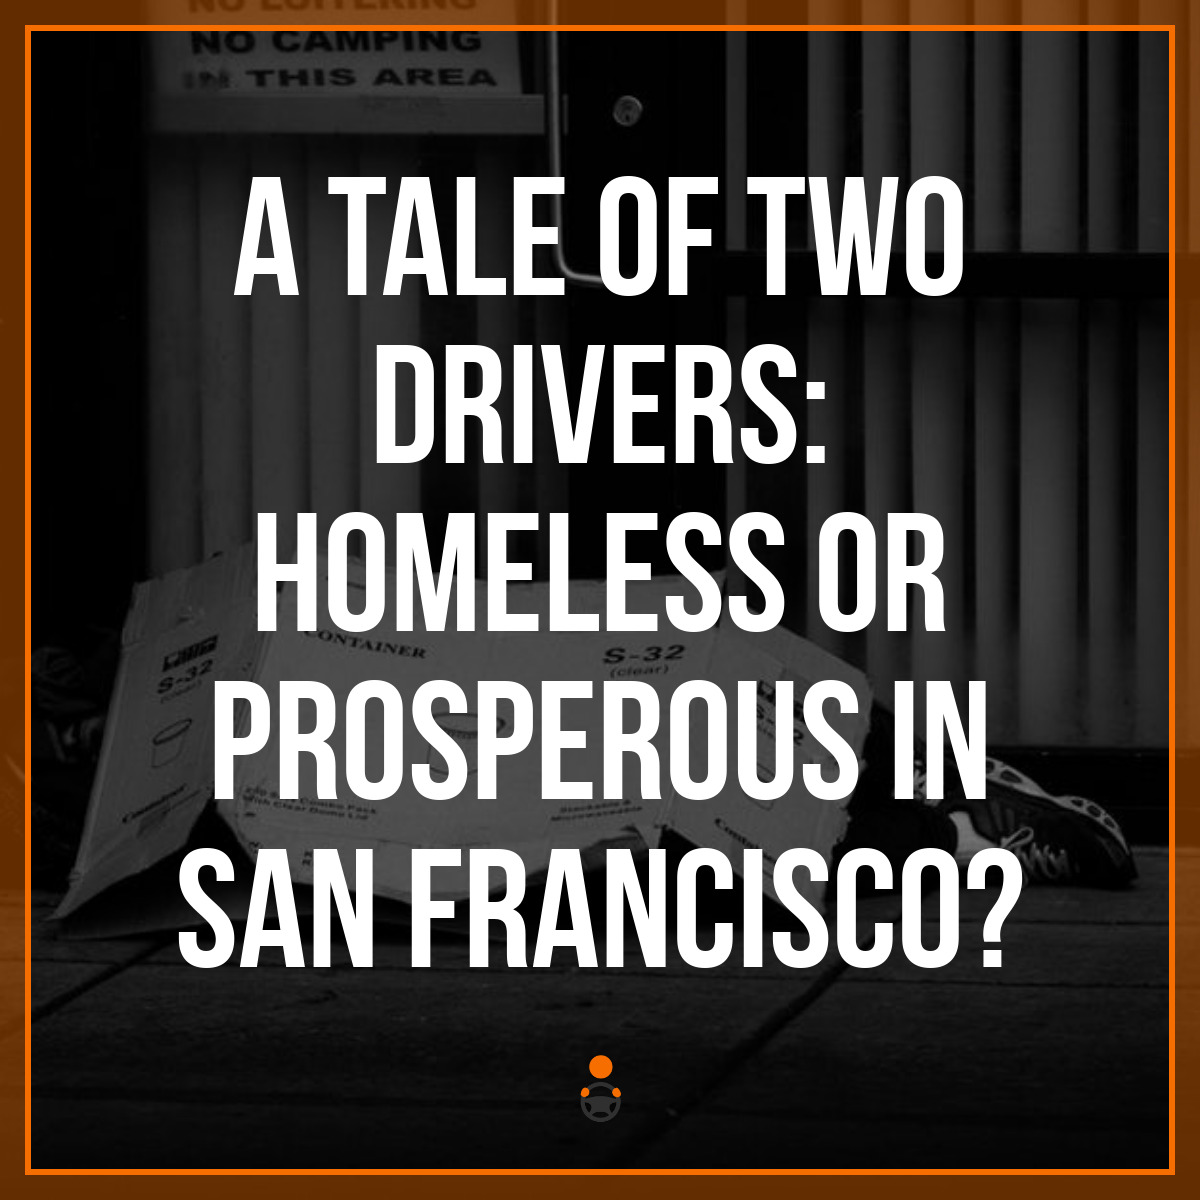 A Tale Of Two Drivers:  Homeless or Prosperous in San Francisco?